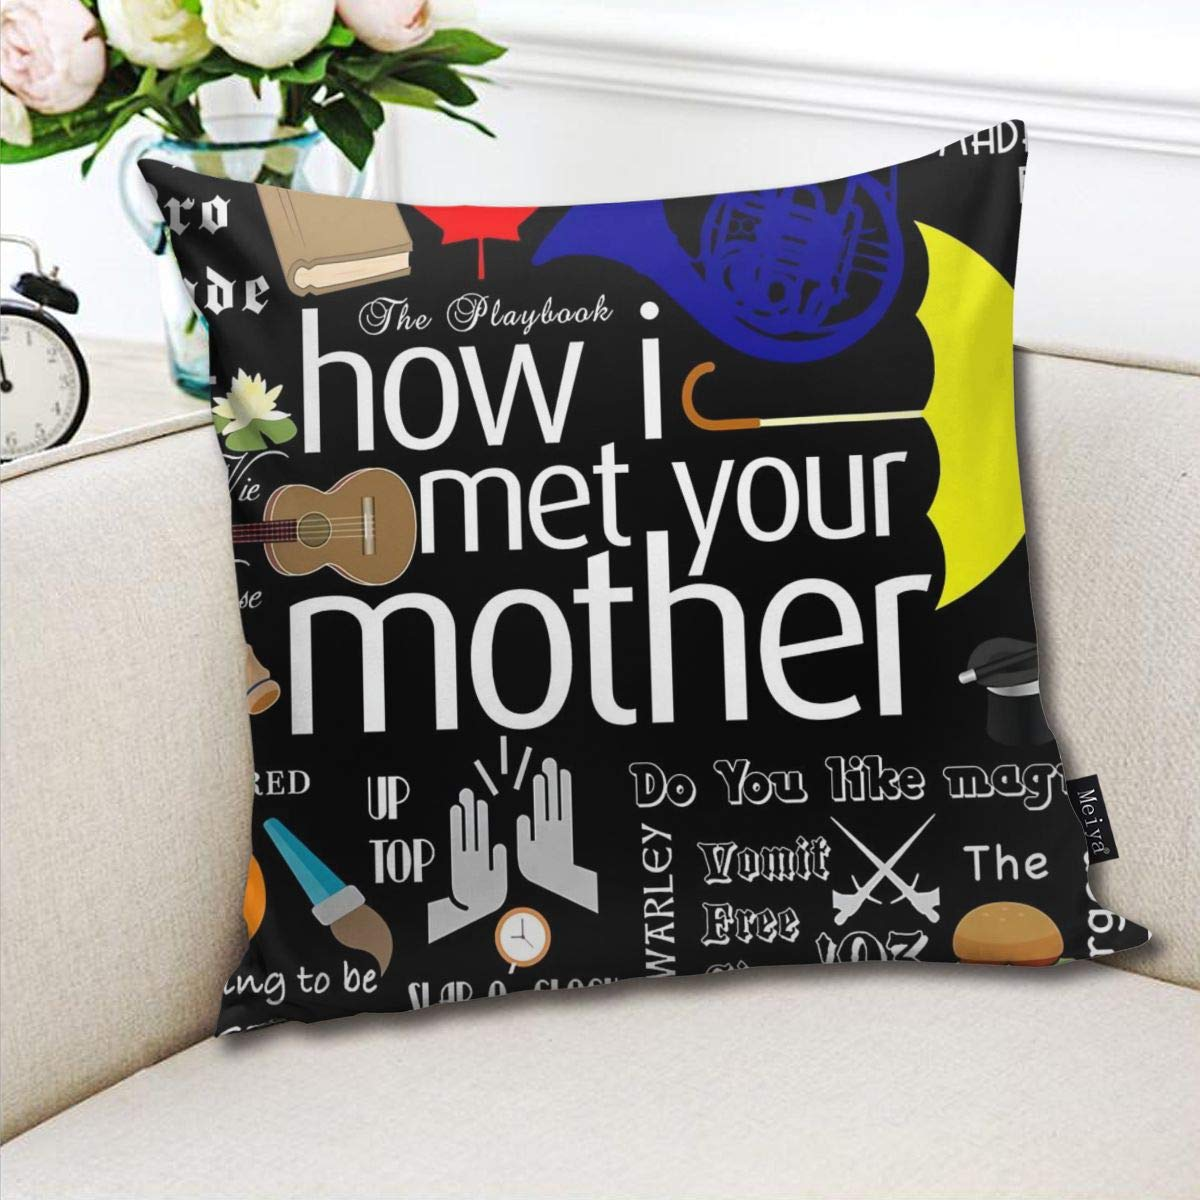 18 x 18 inch Winter Holiday Farmhouse Cotton Cushion Case Decoration for Sofa Couch BLUETOP How I Met Your Mother Pillow Cover